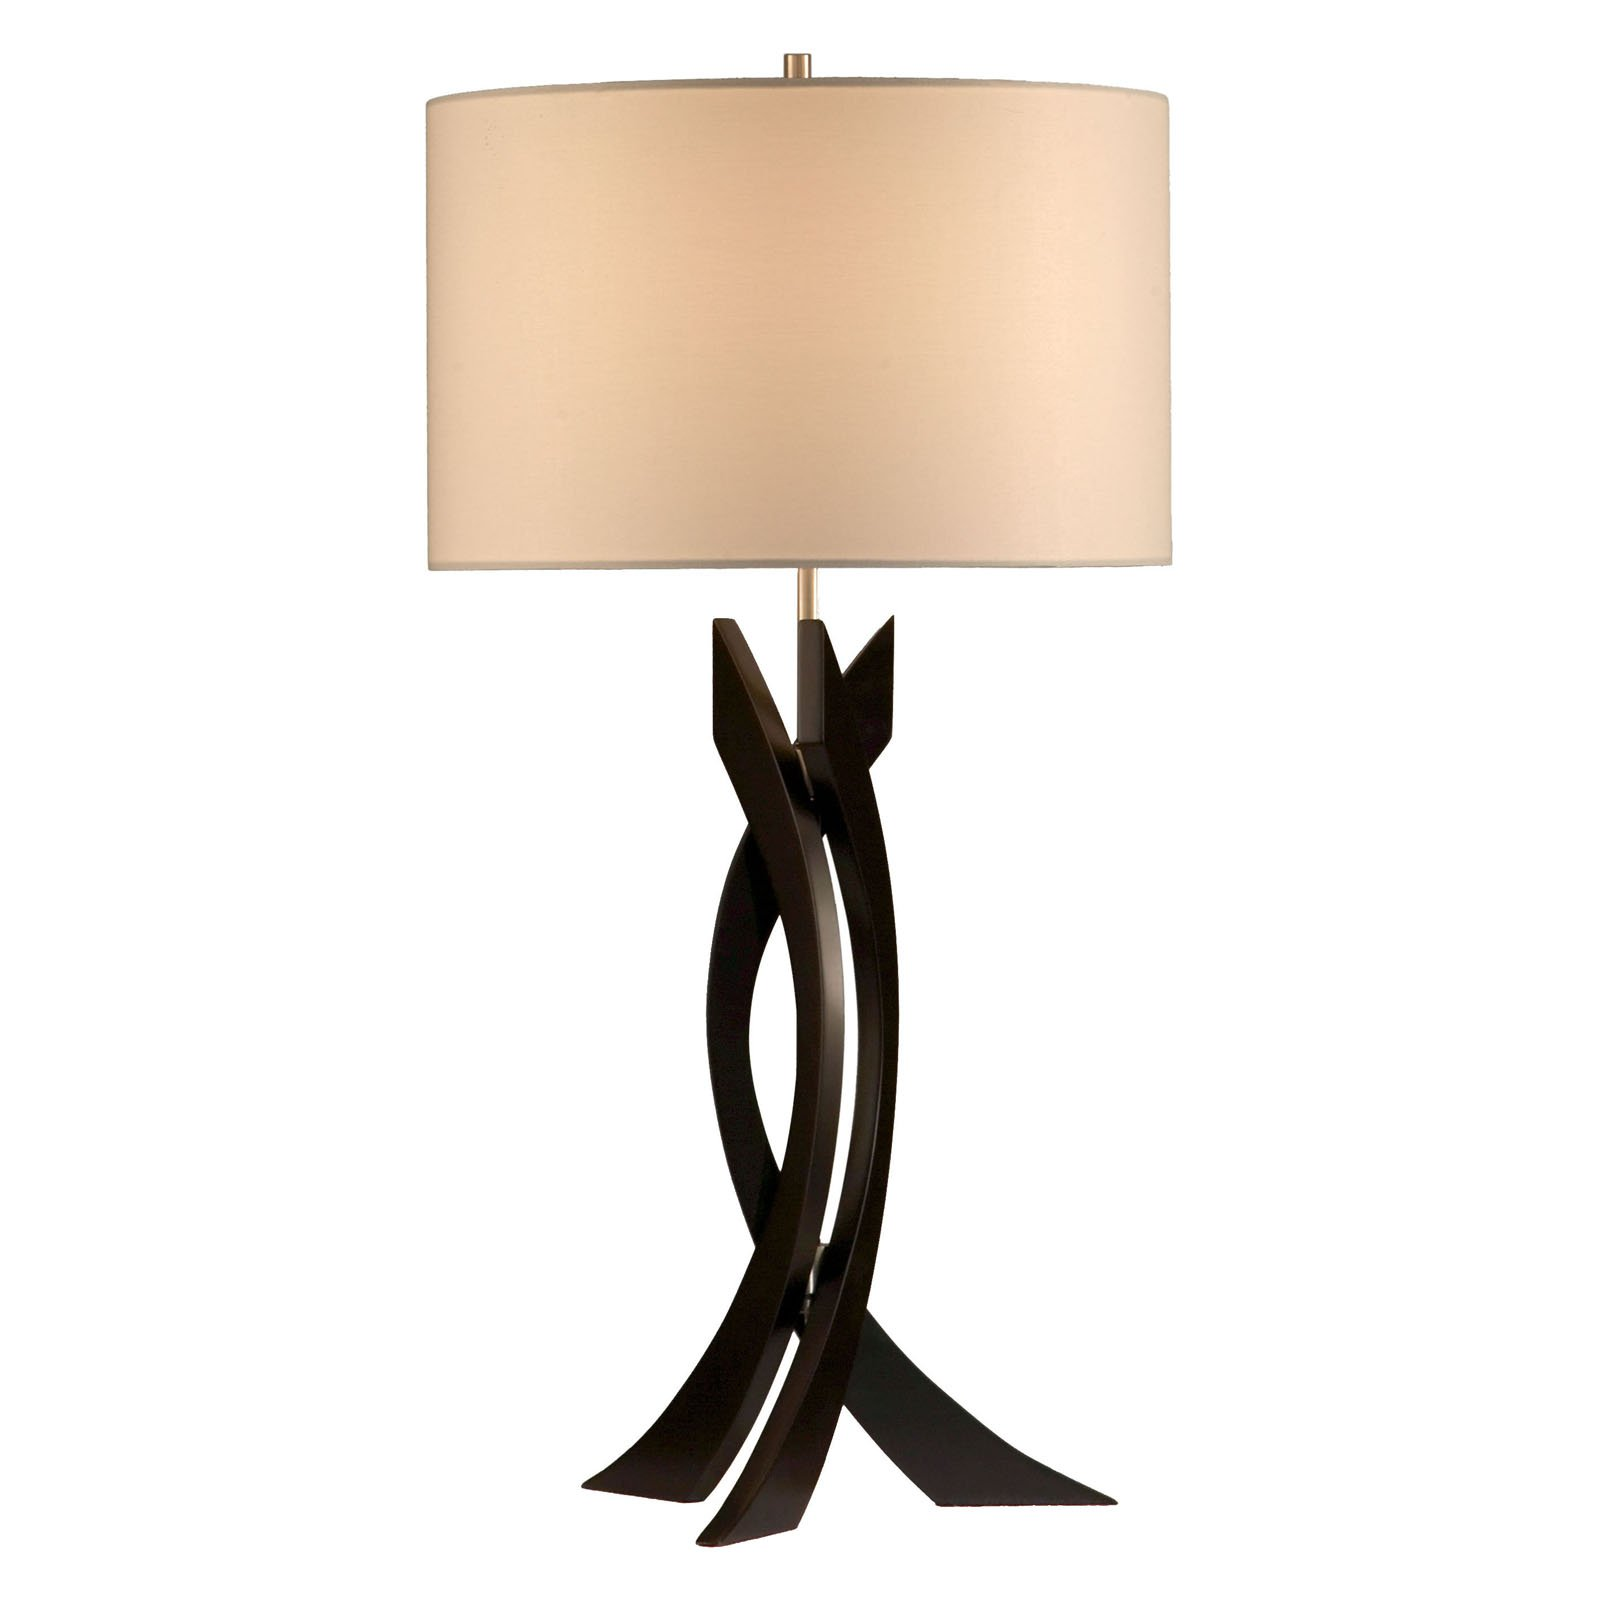 NOVA of California Trensa Table Lamp